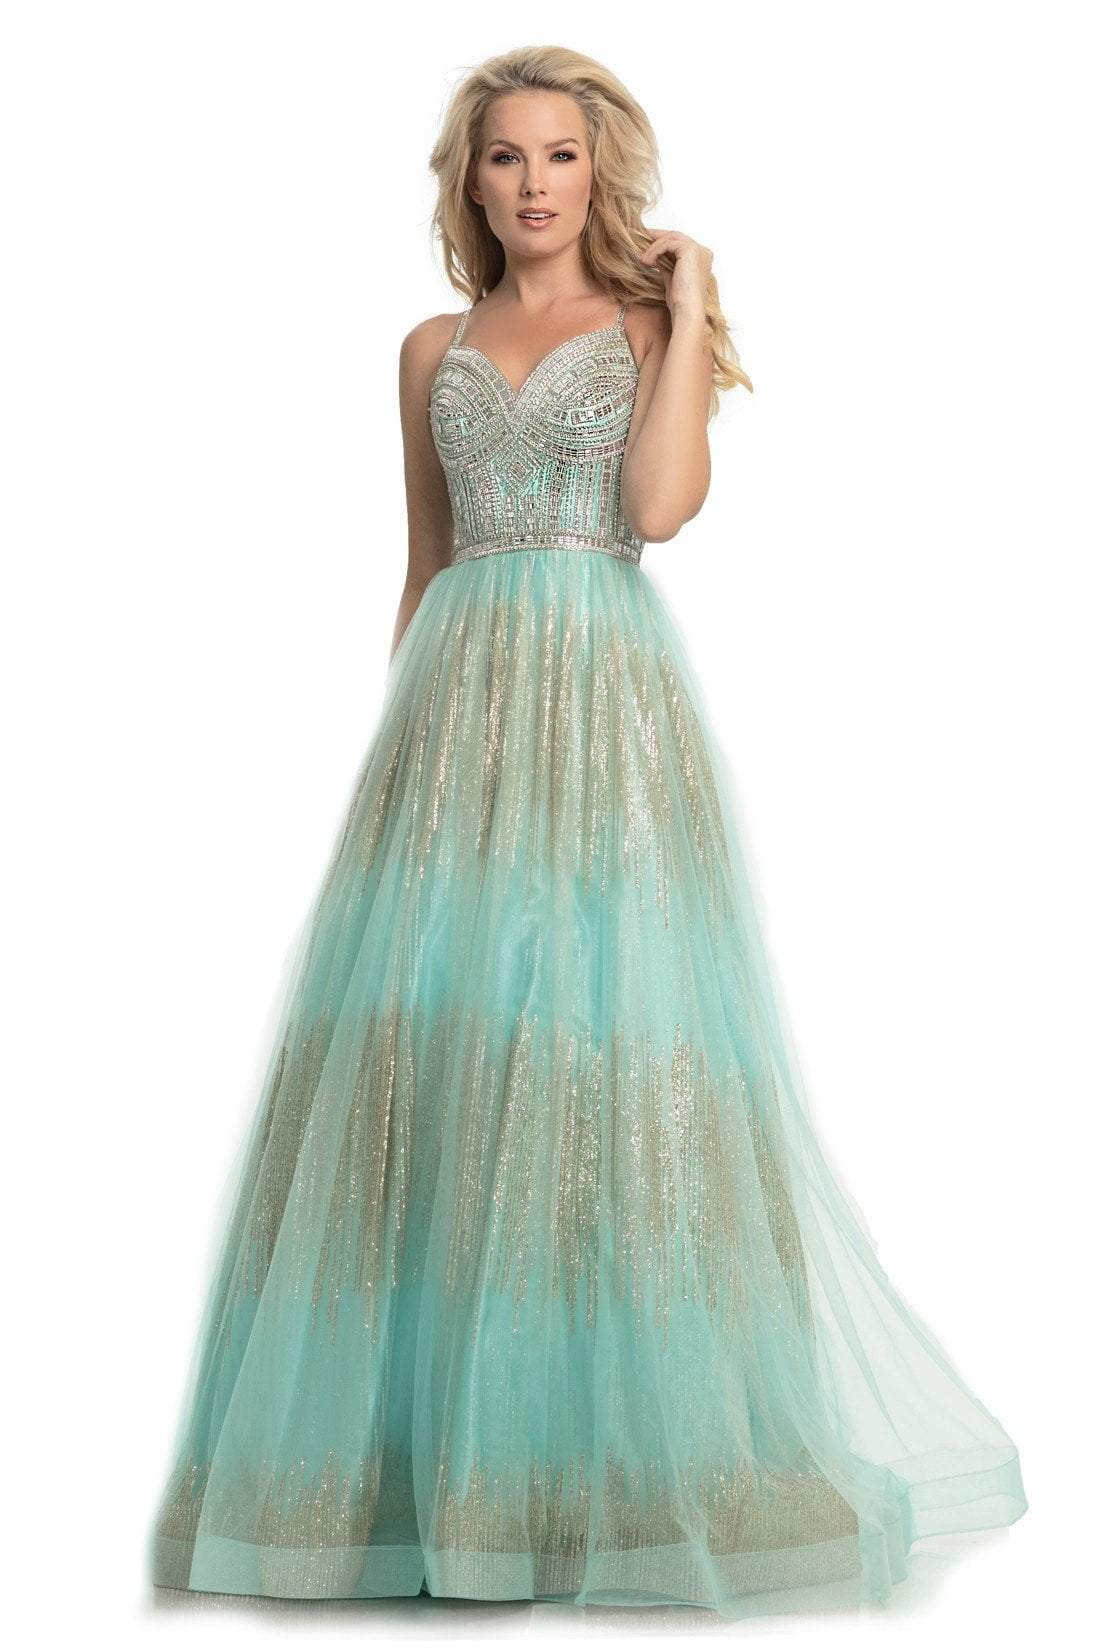 Johnathan Kayne - 9067 Sleeveless Sparkly Glitter Mesh A-Line Gown In Green and Gold